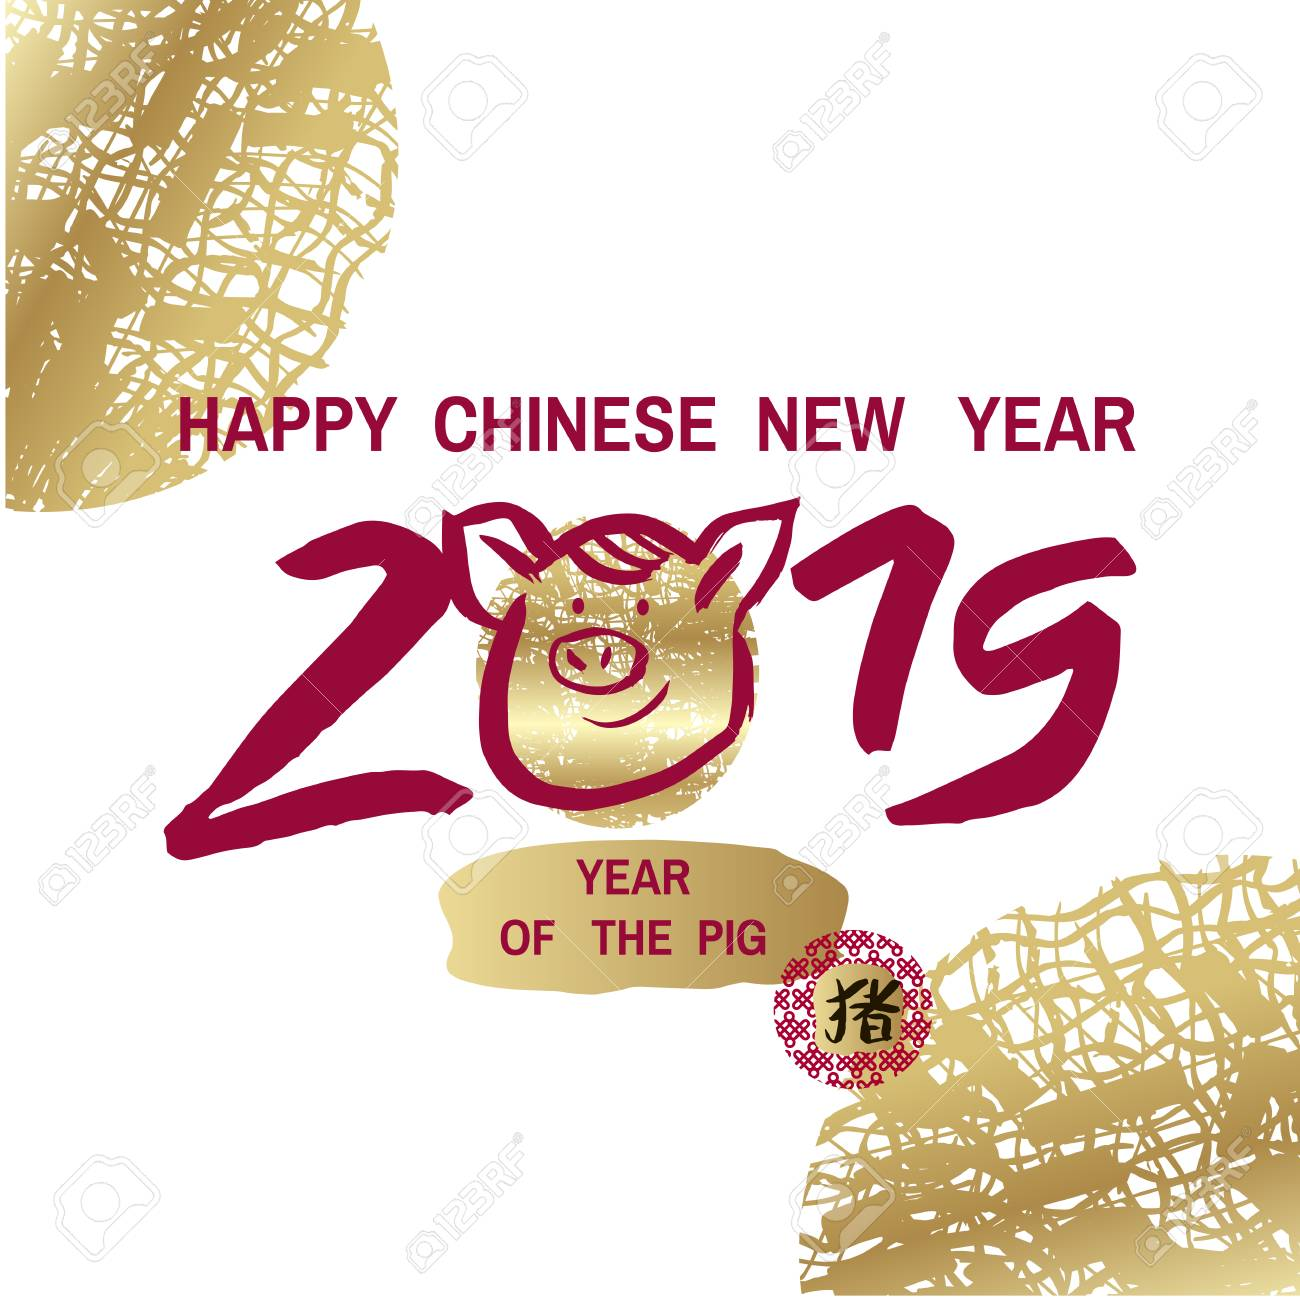 happy chinese new year year of the pig pig symbol 2019 new year